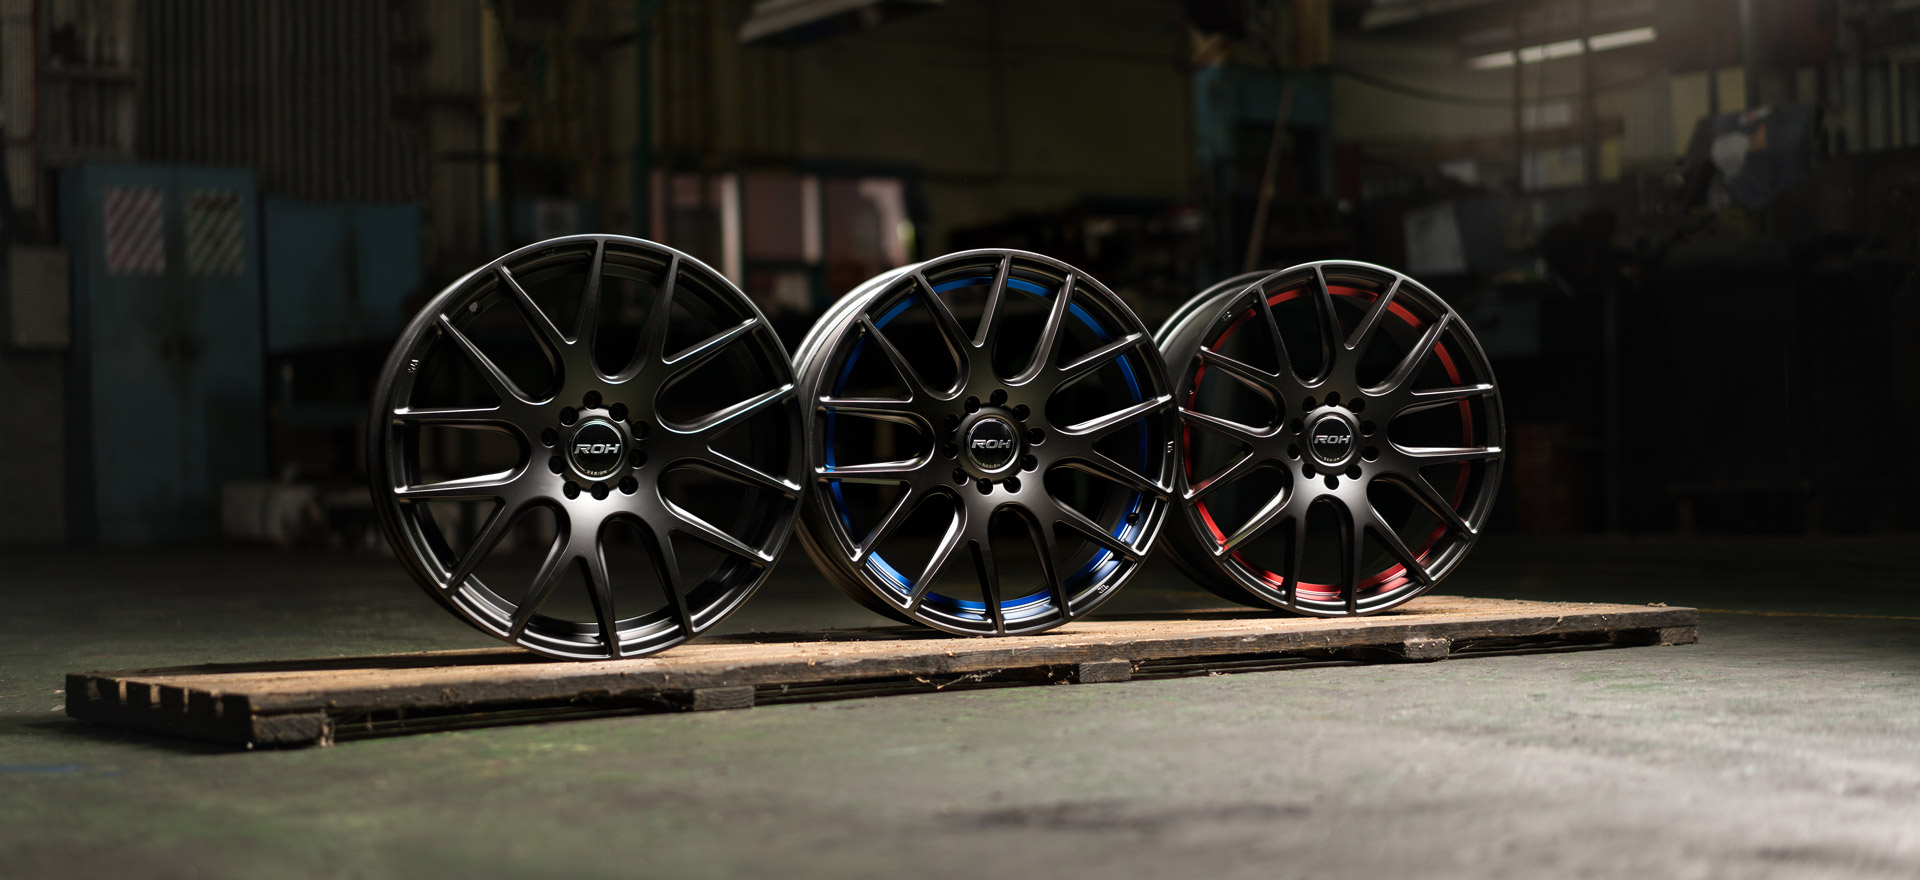 Evo R wheels in all colours on wooden bench